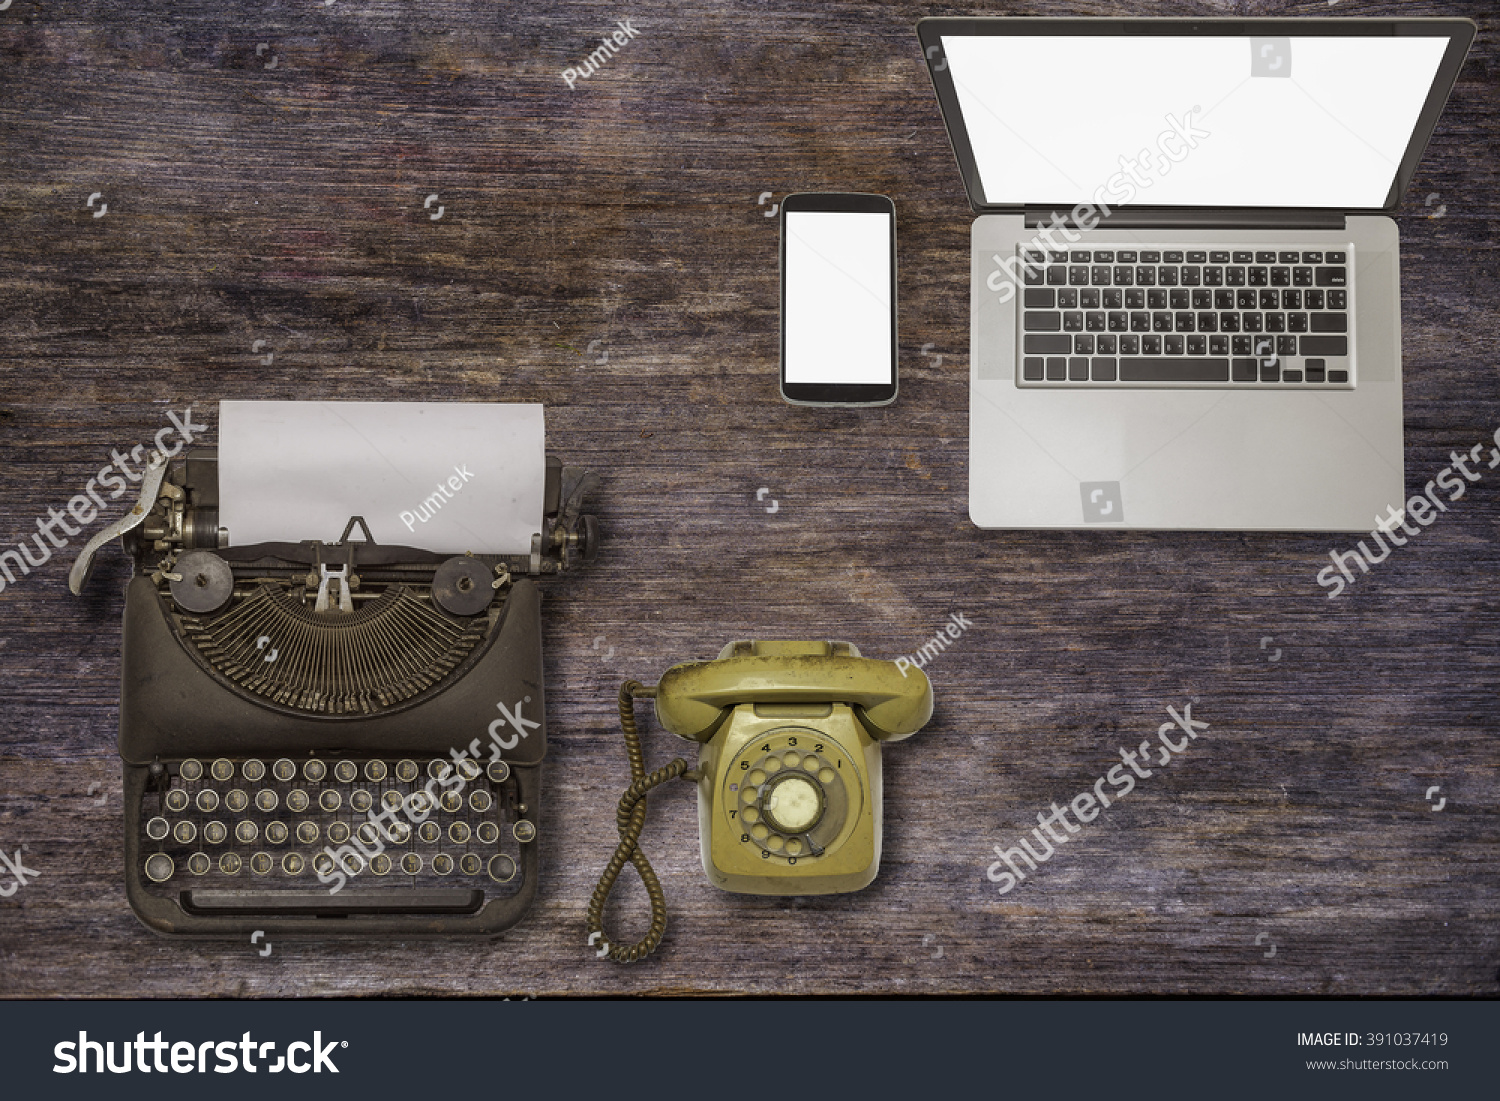 Past Present Future Technology Devices Typewriter Stock